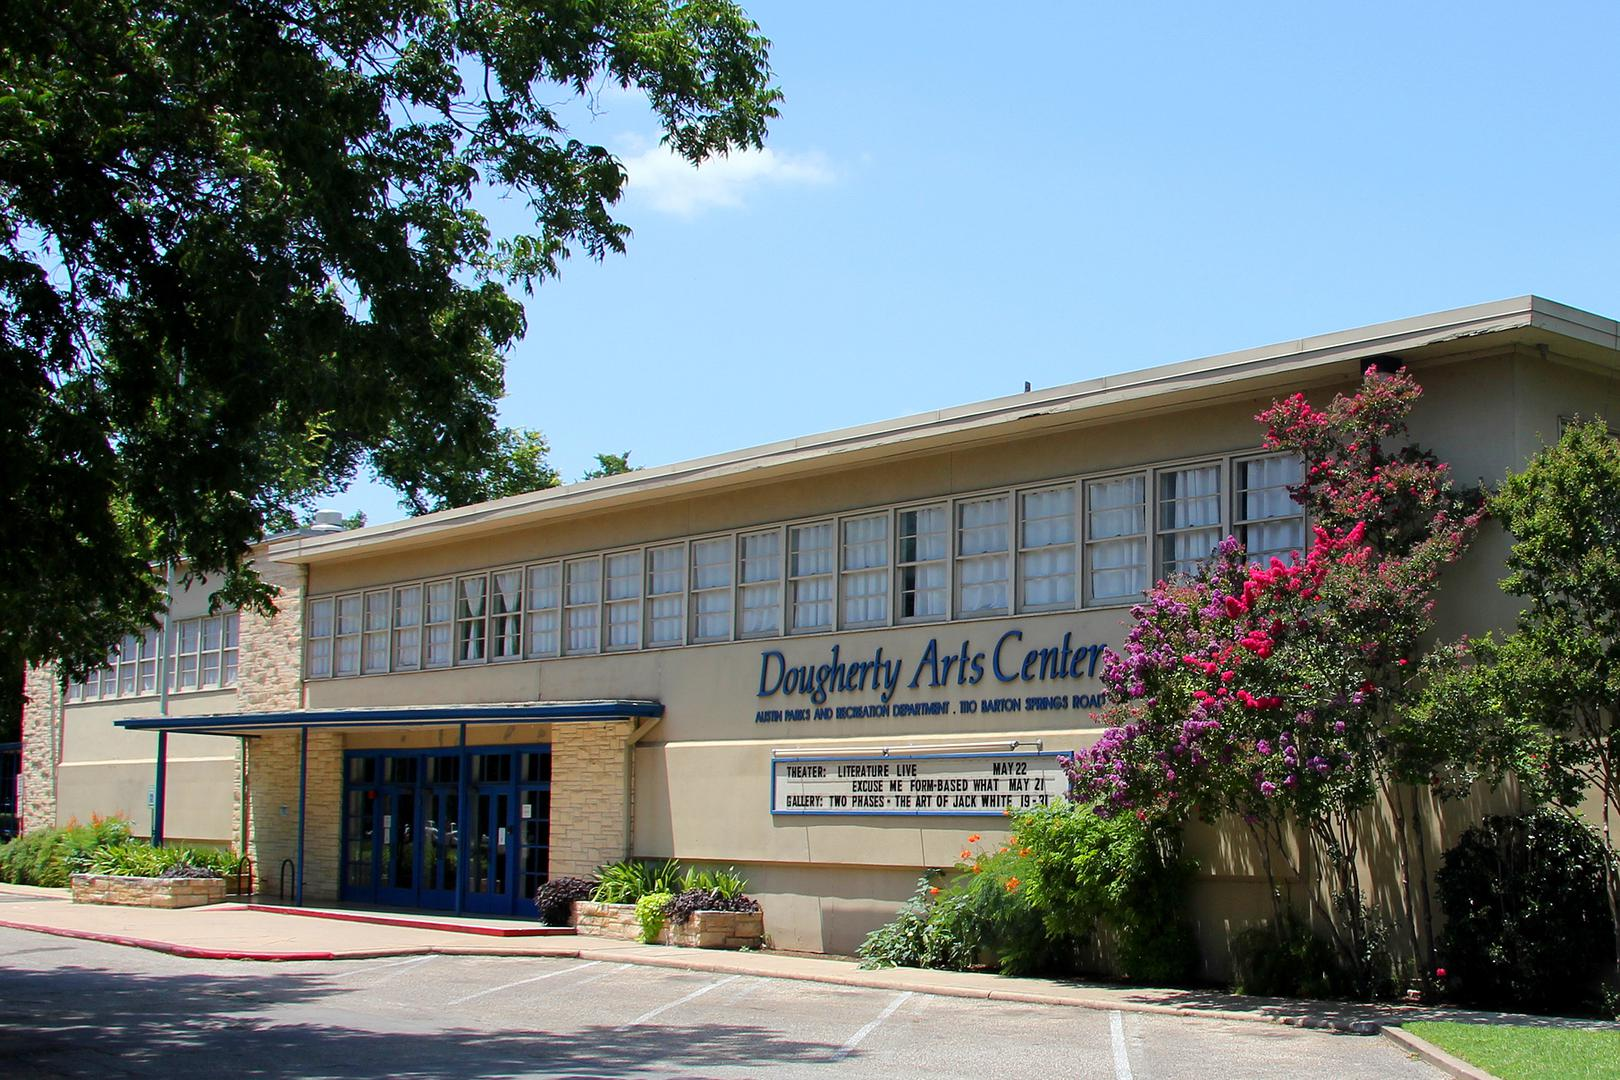 space at Dougherty Arts Center